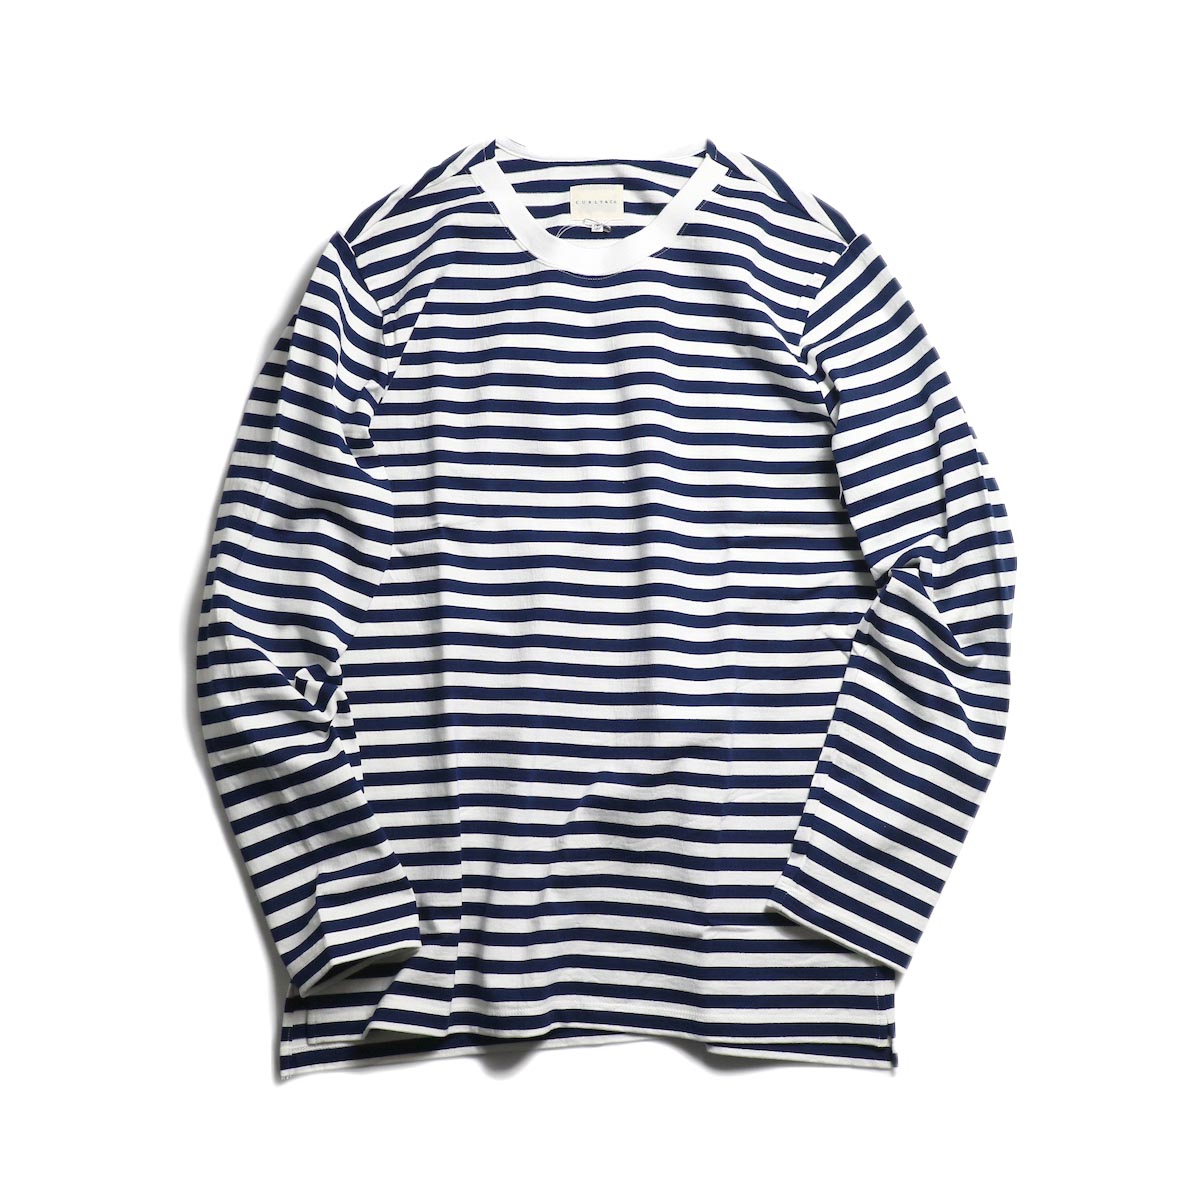 CURLY / Bright LS Border Tee -White/Navy 正面